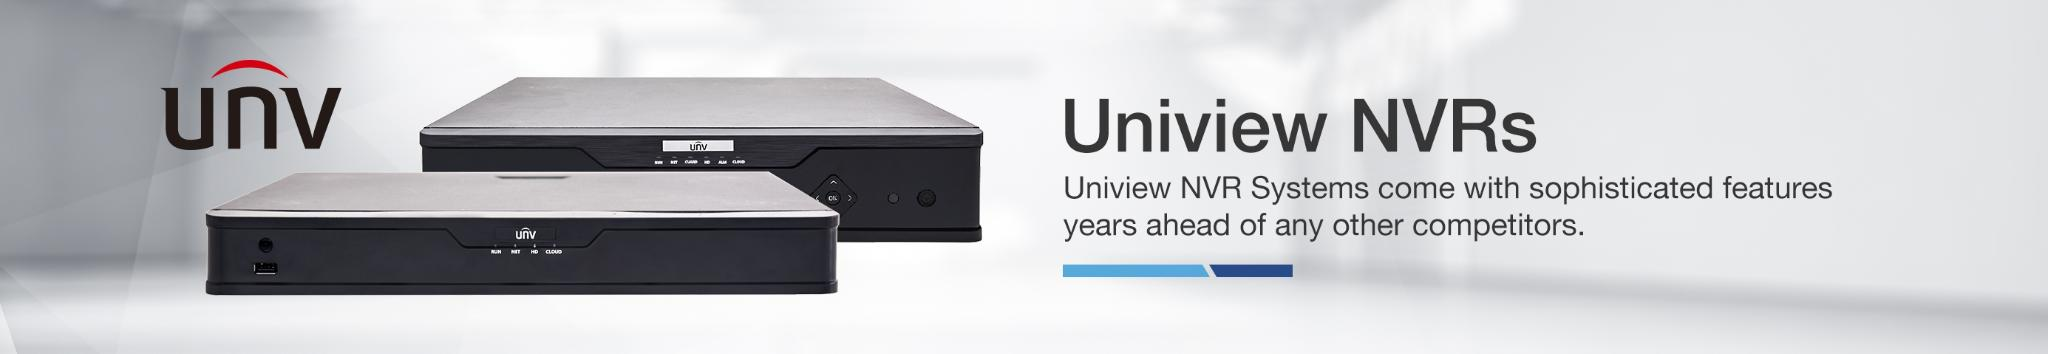 Uniview NVR Systems from Long Beach, CA